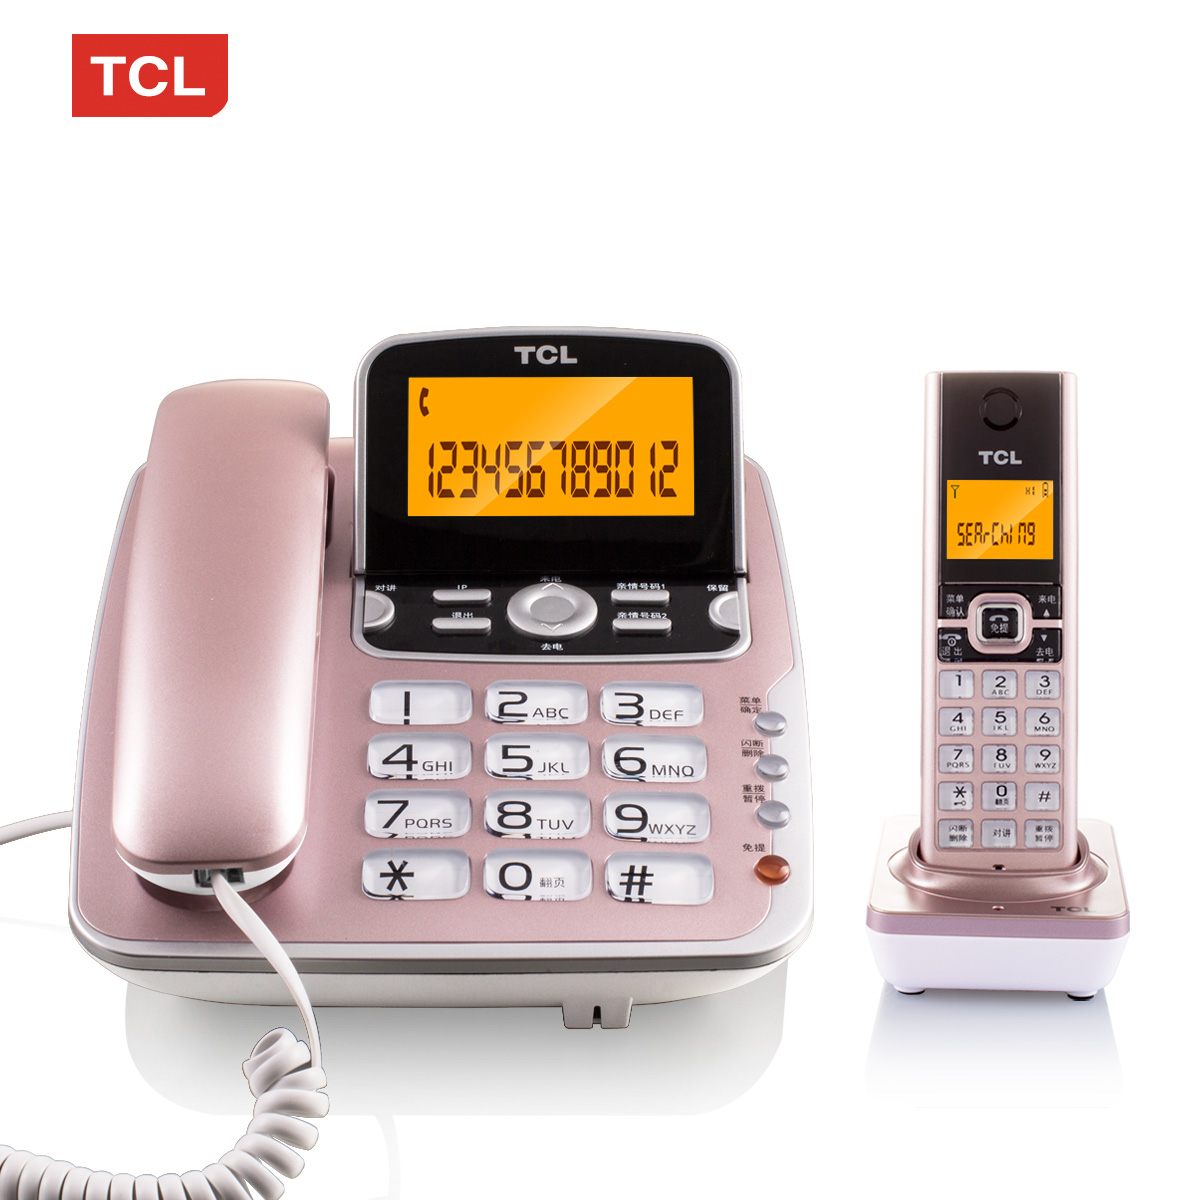 TCL D8 D61 telephone set digital cordless telephone sub master unit home office fixed wireless landline Mobile